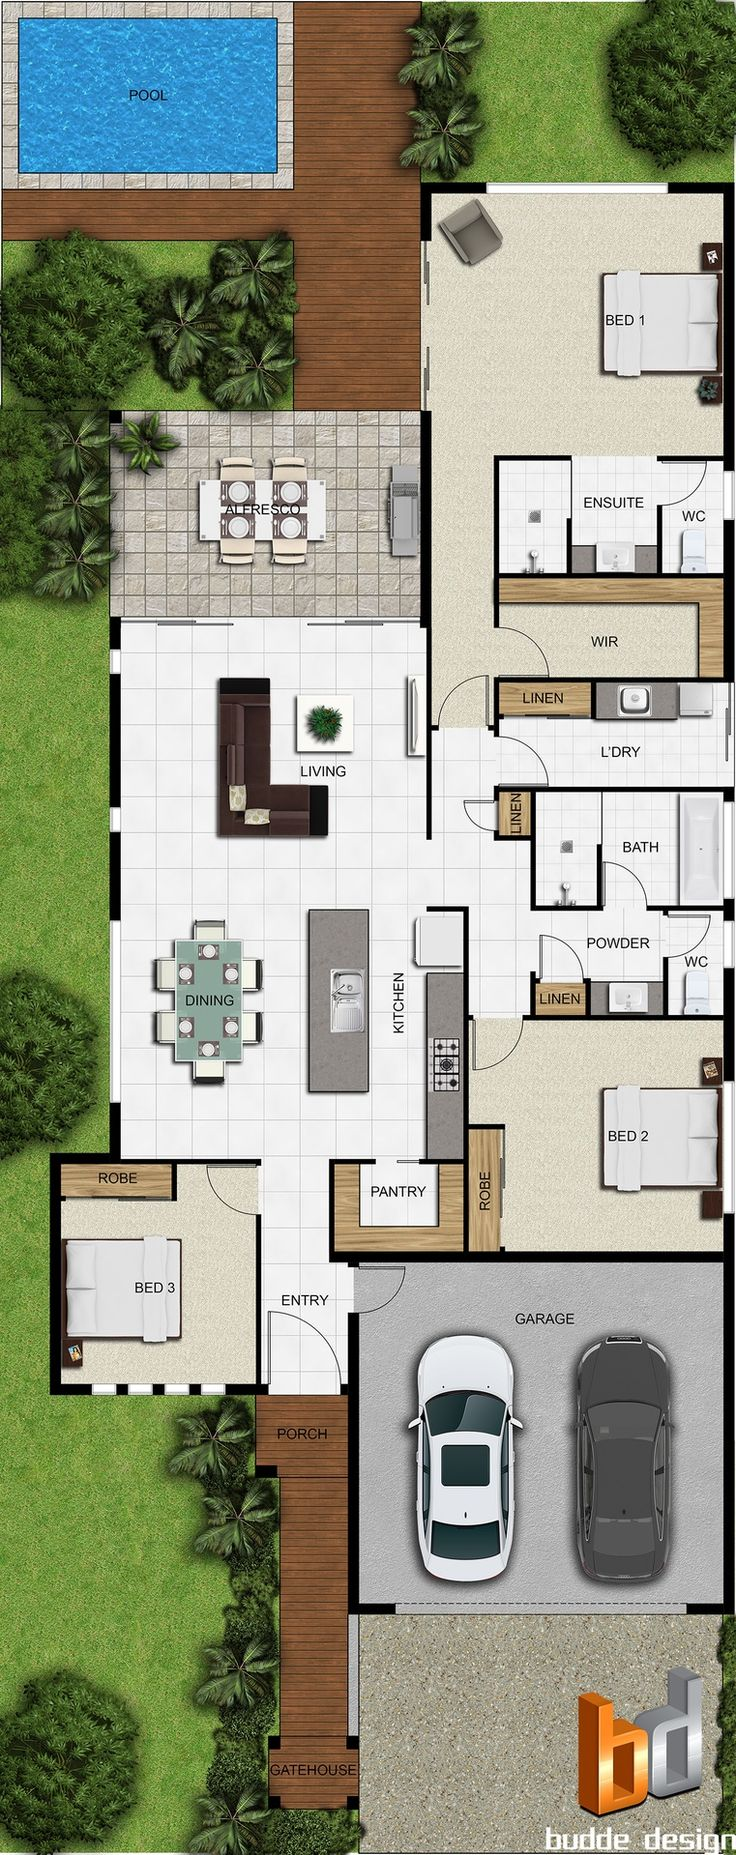 Existing ground floor plan return to top existing first floor - Existing Ground Floor Plan Return To Top Existing First Floor Create High Quality Professional And Download